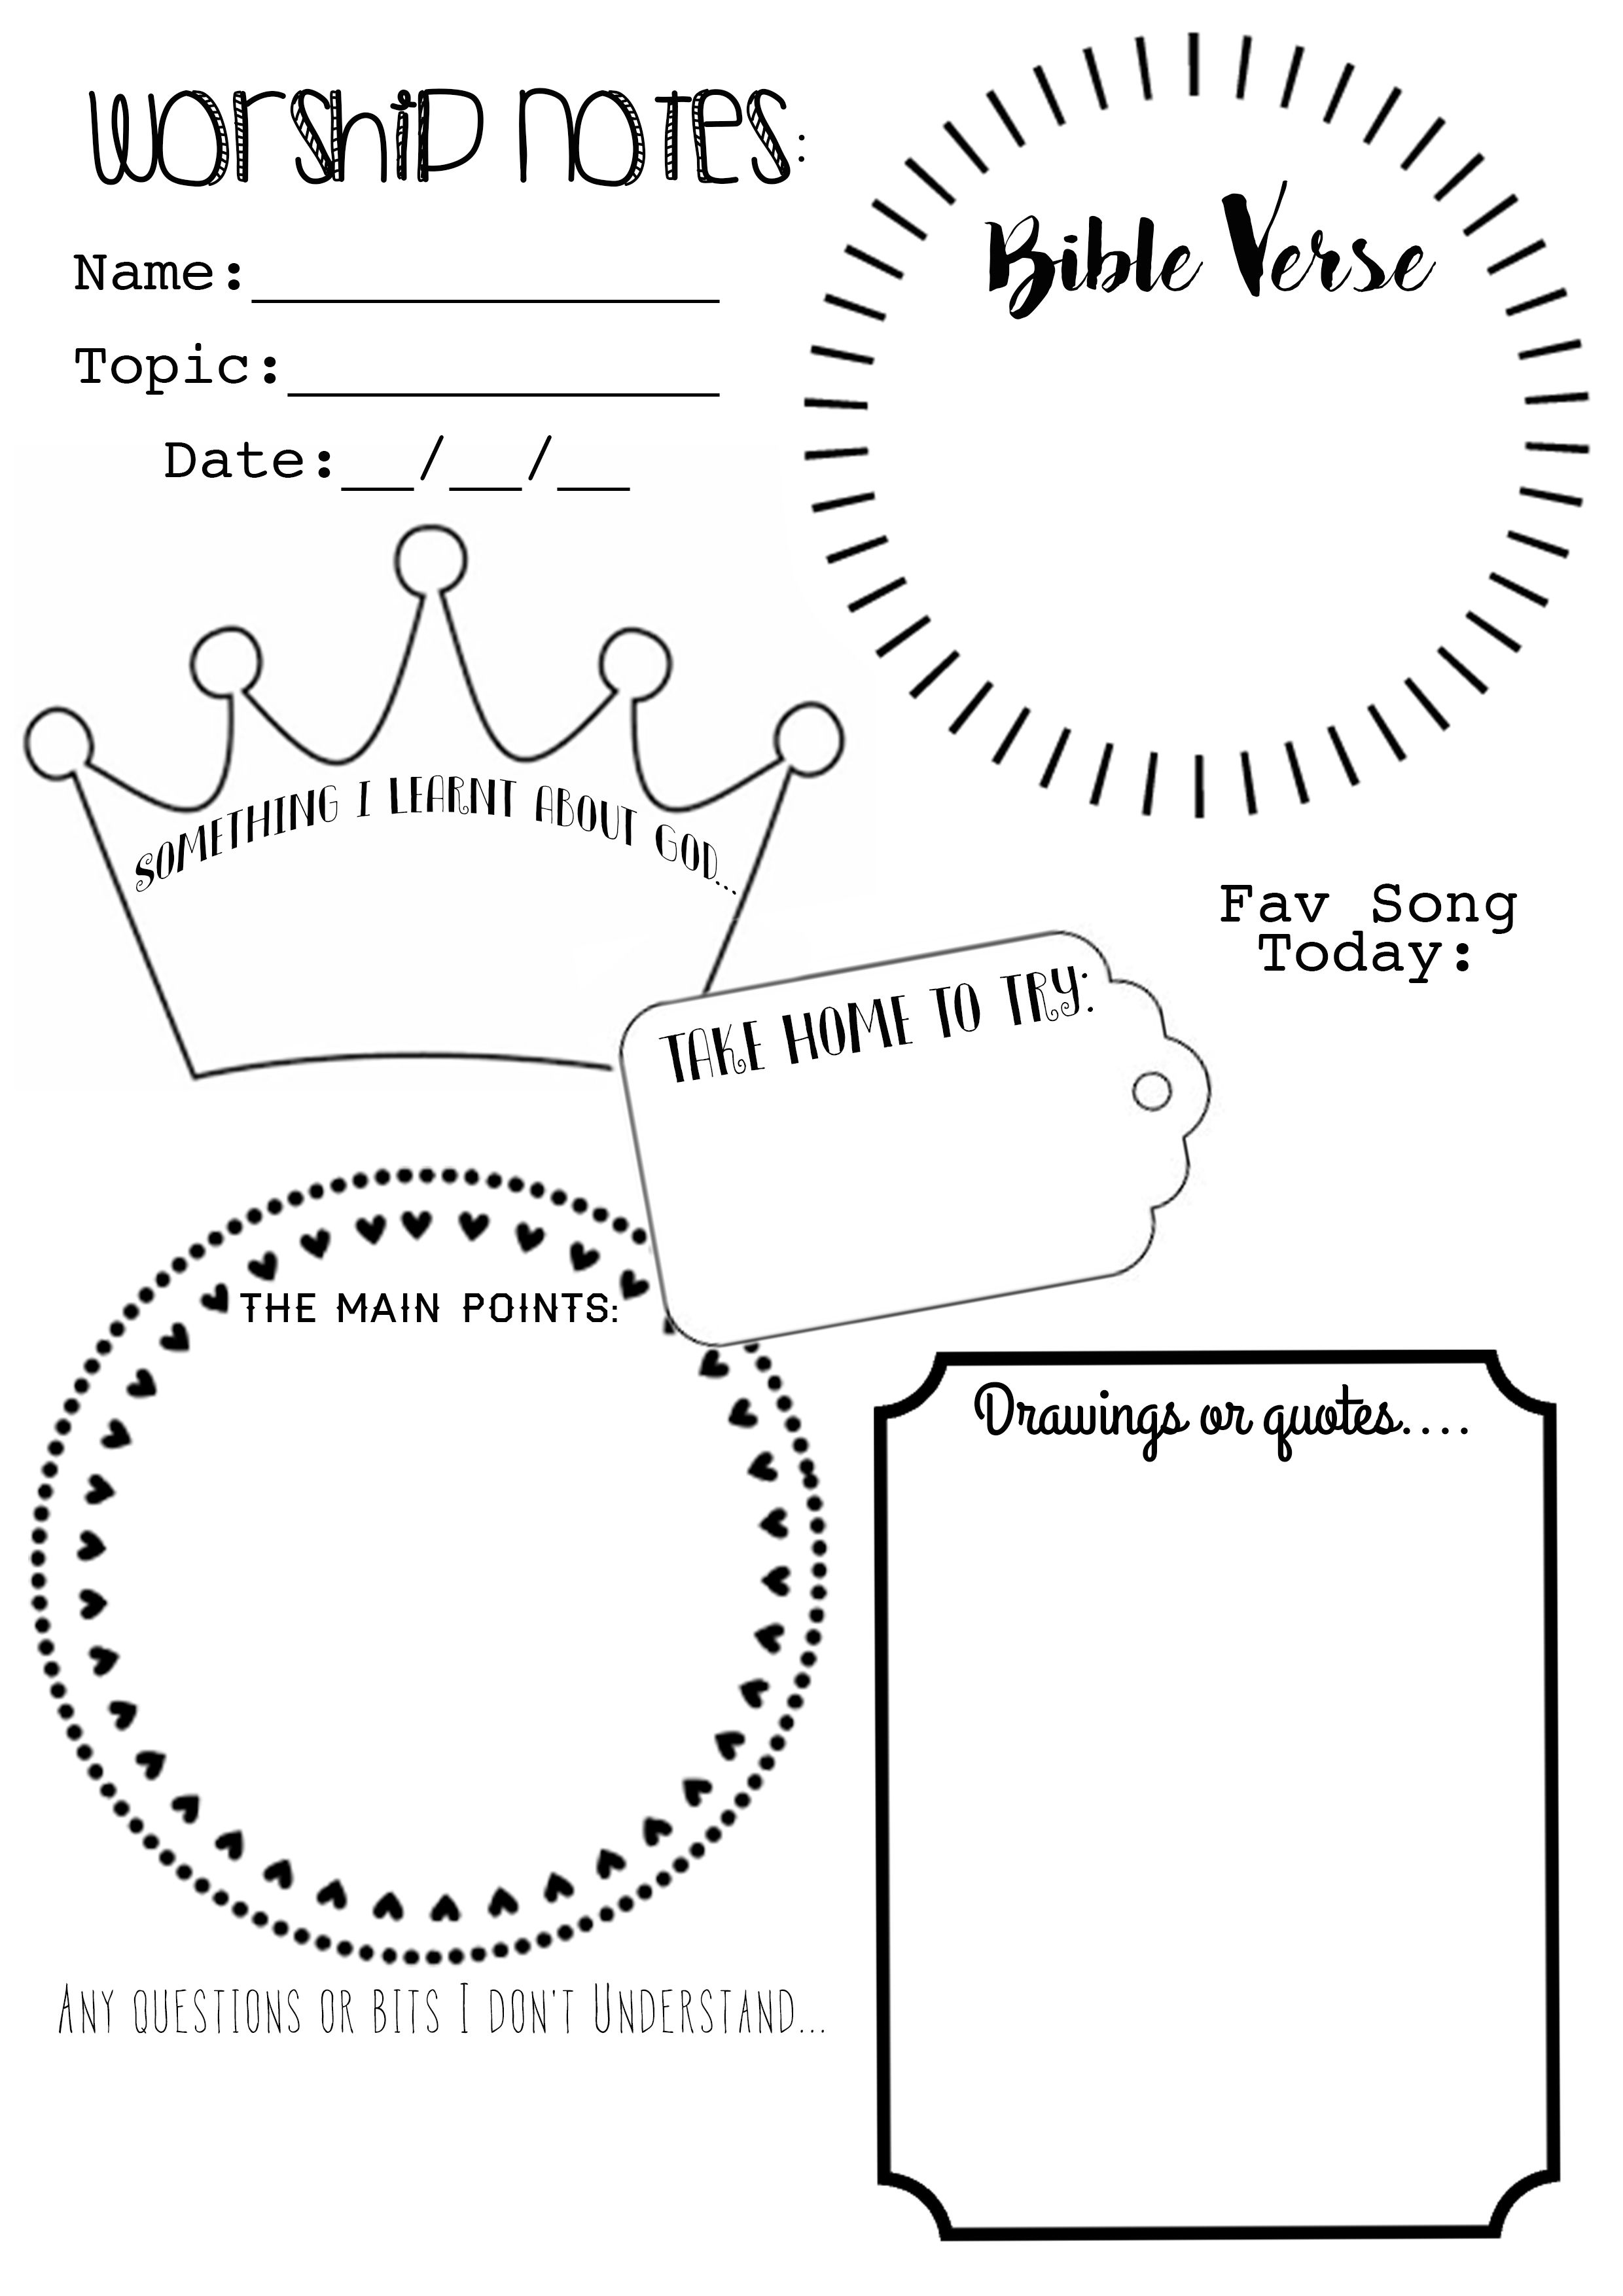 I've Made Up A Worship Notes/ Sermon Notes Free Printable For The - Free Printable Bible Games For Youth